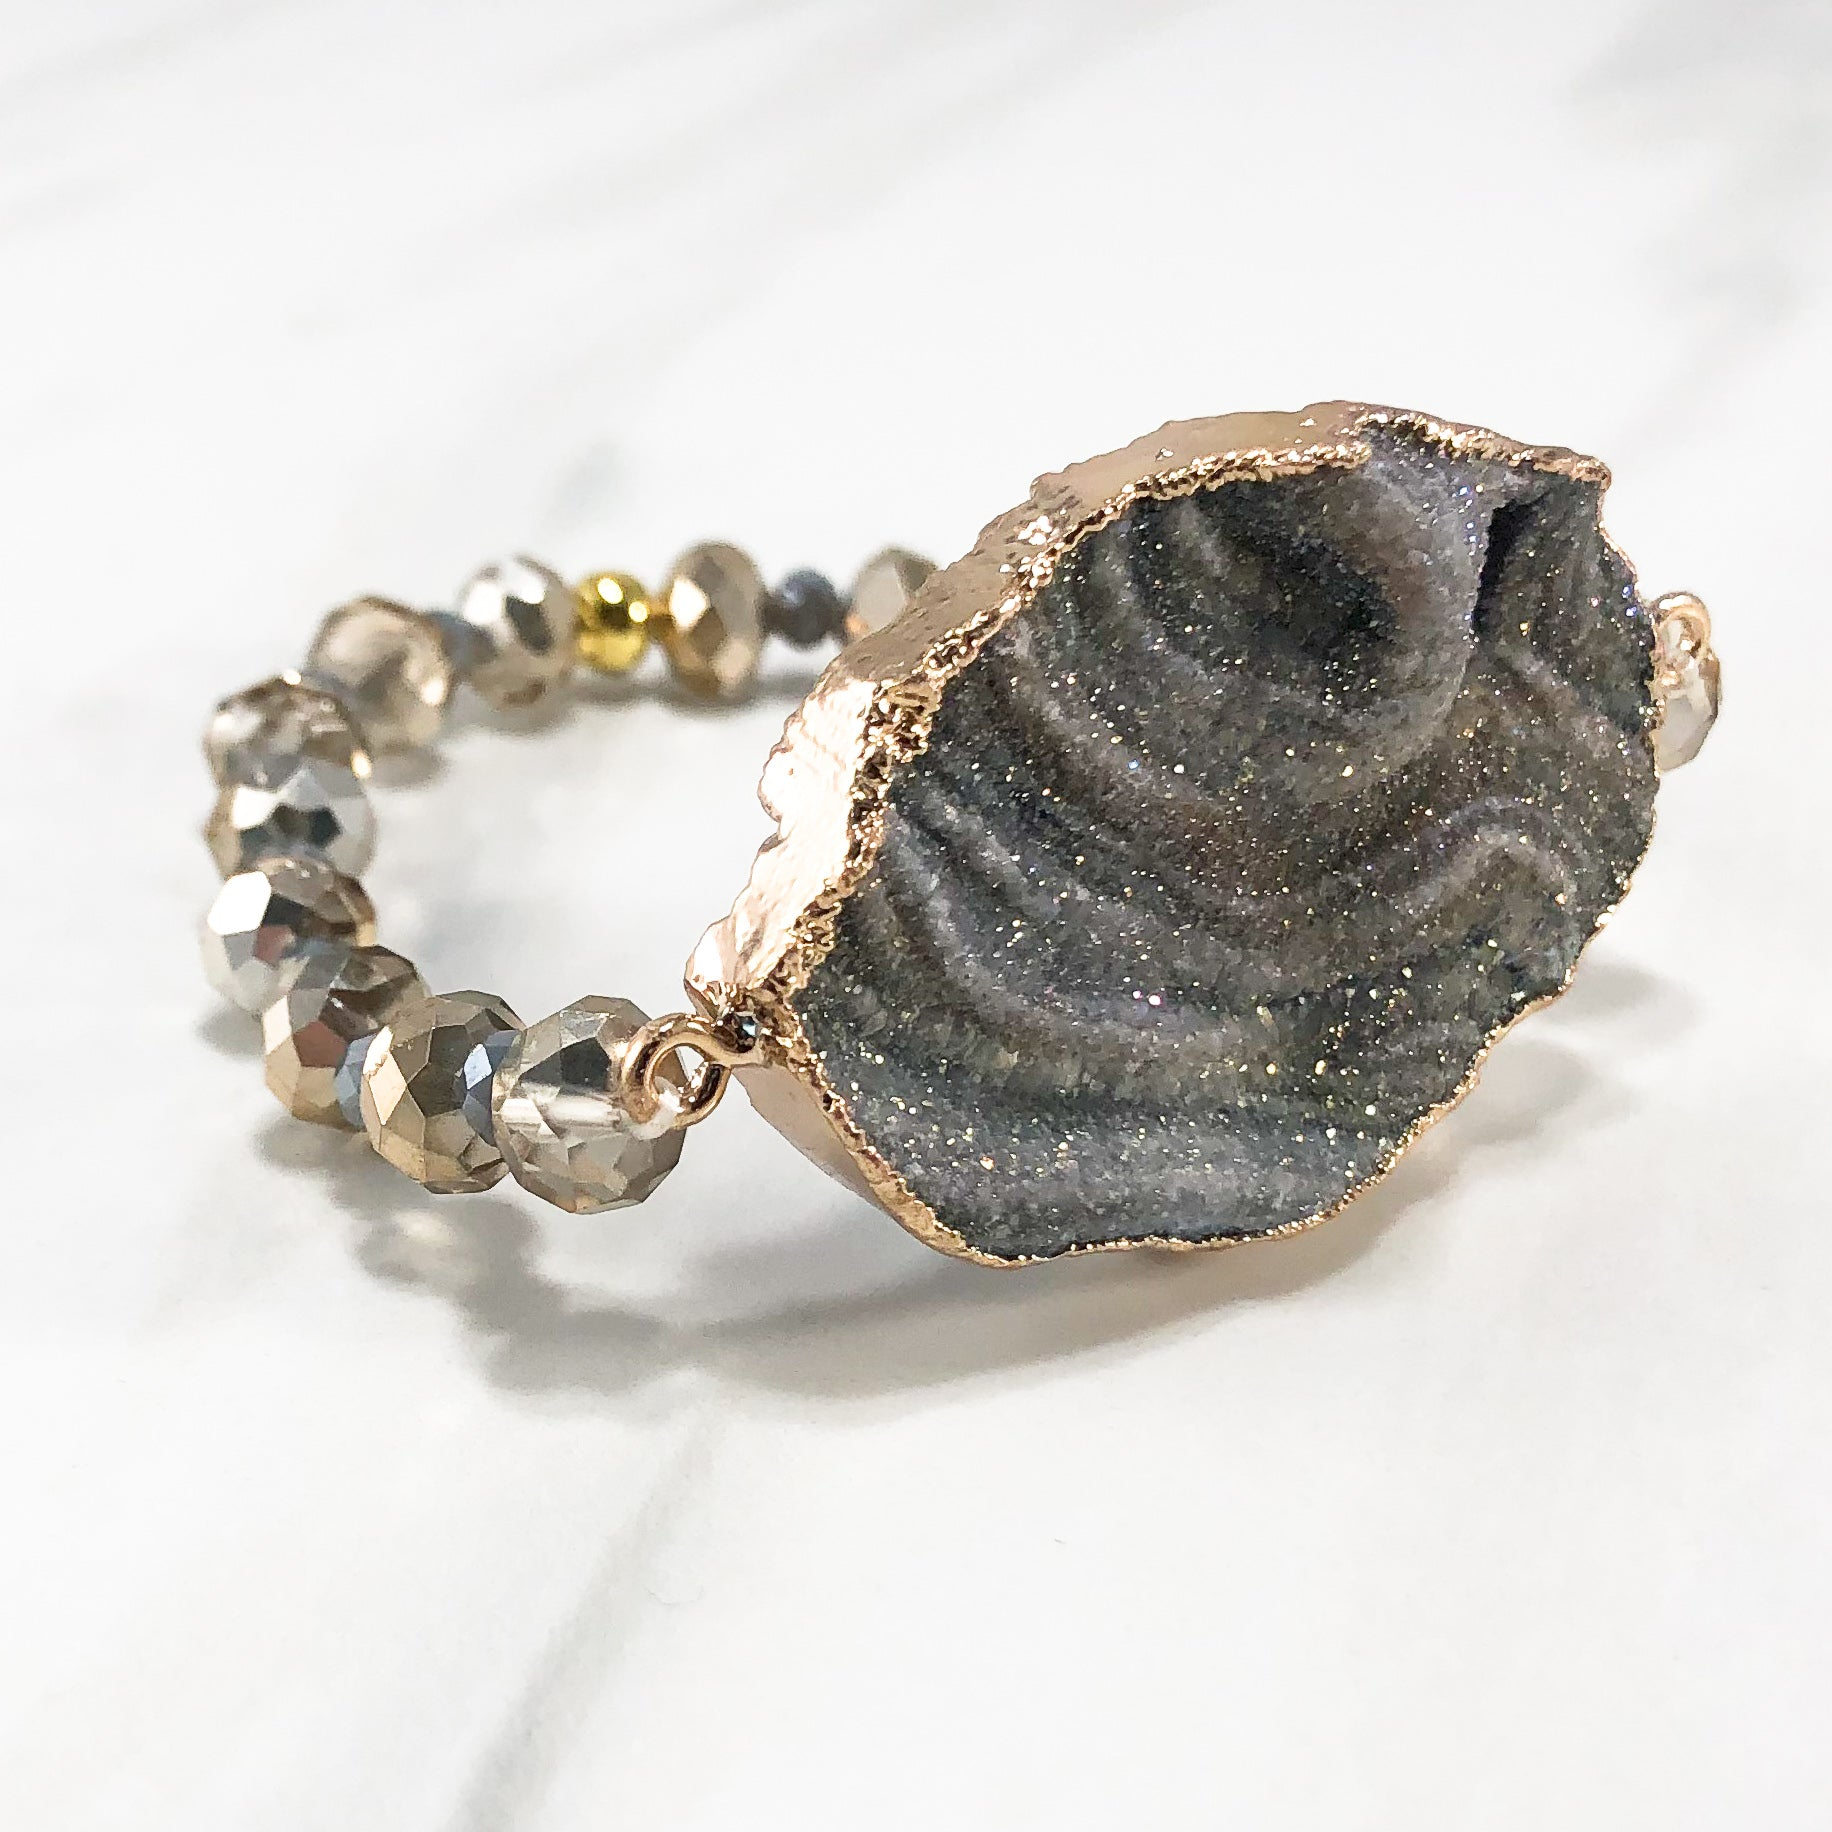 LaCouture Limited Edition Druzy Bracelet